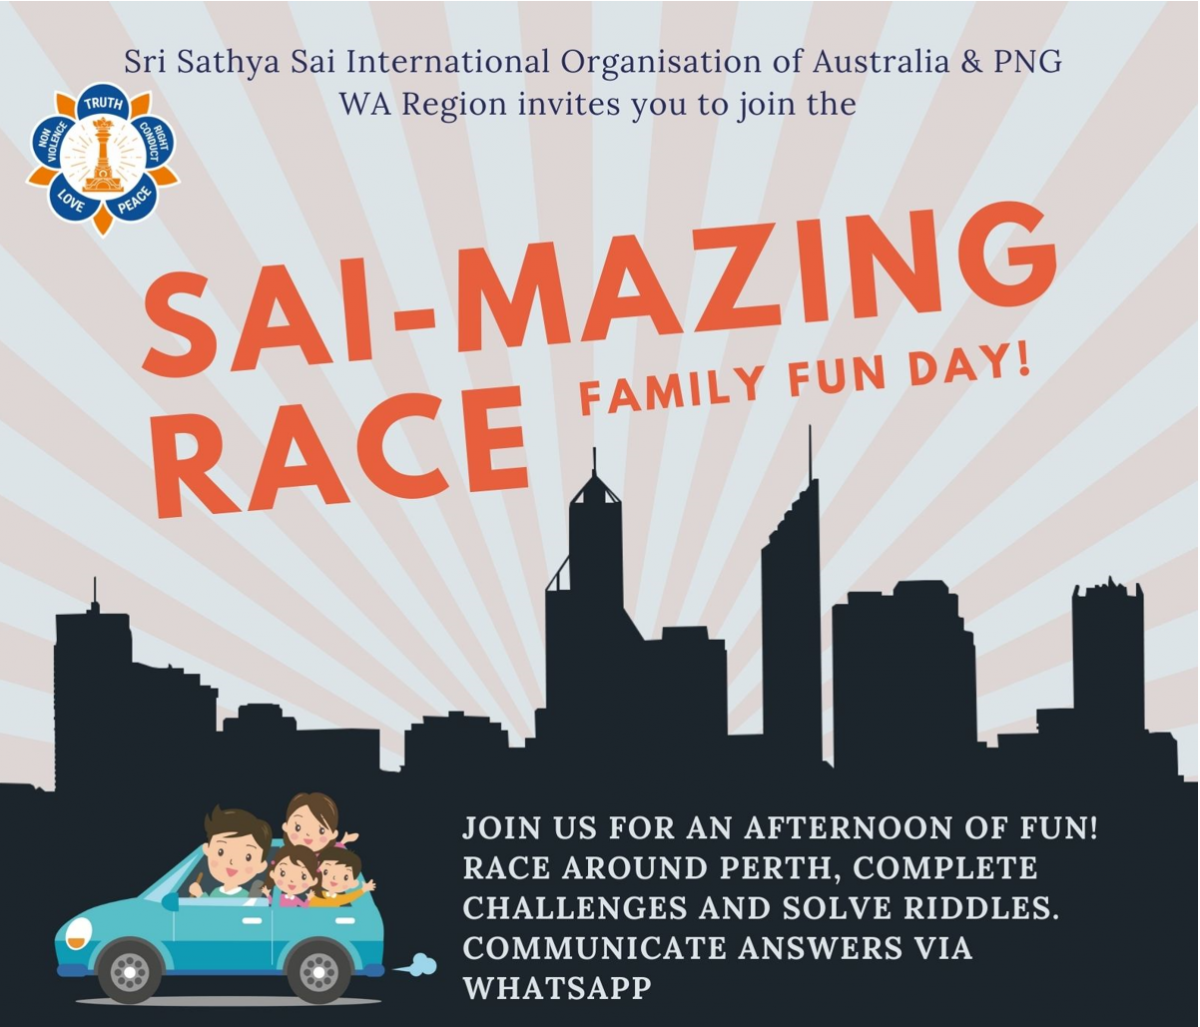 Sai-Mazing Race in Perth!